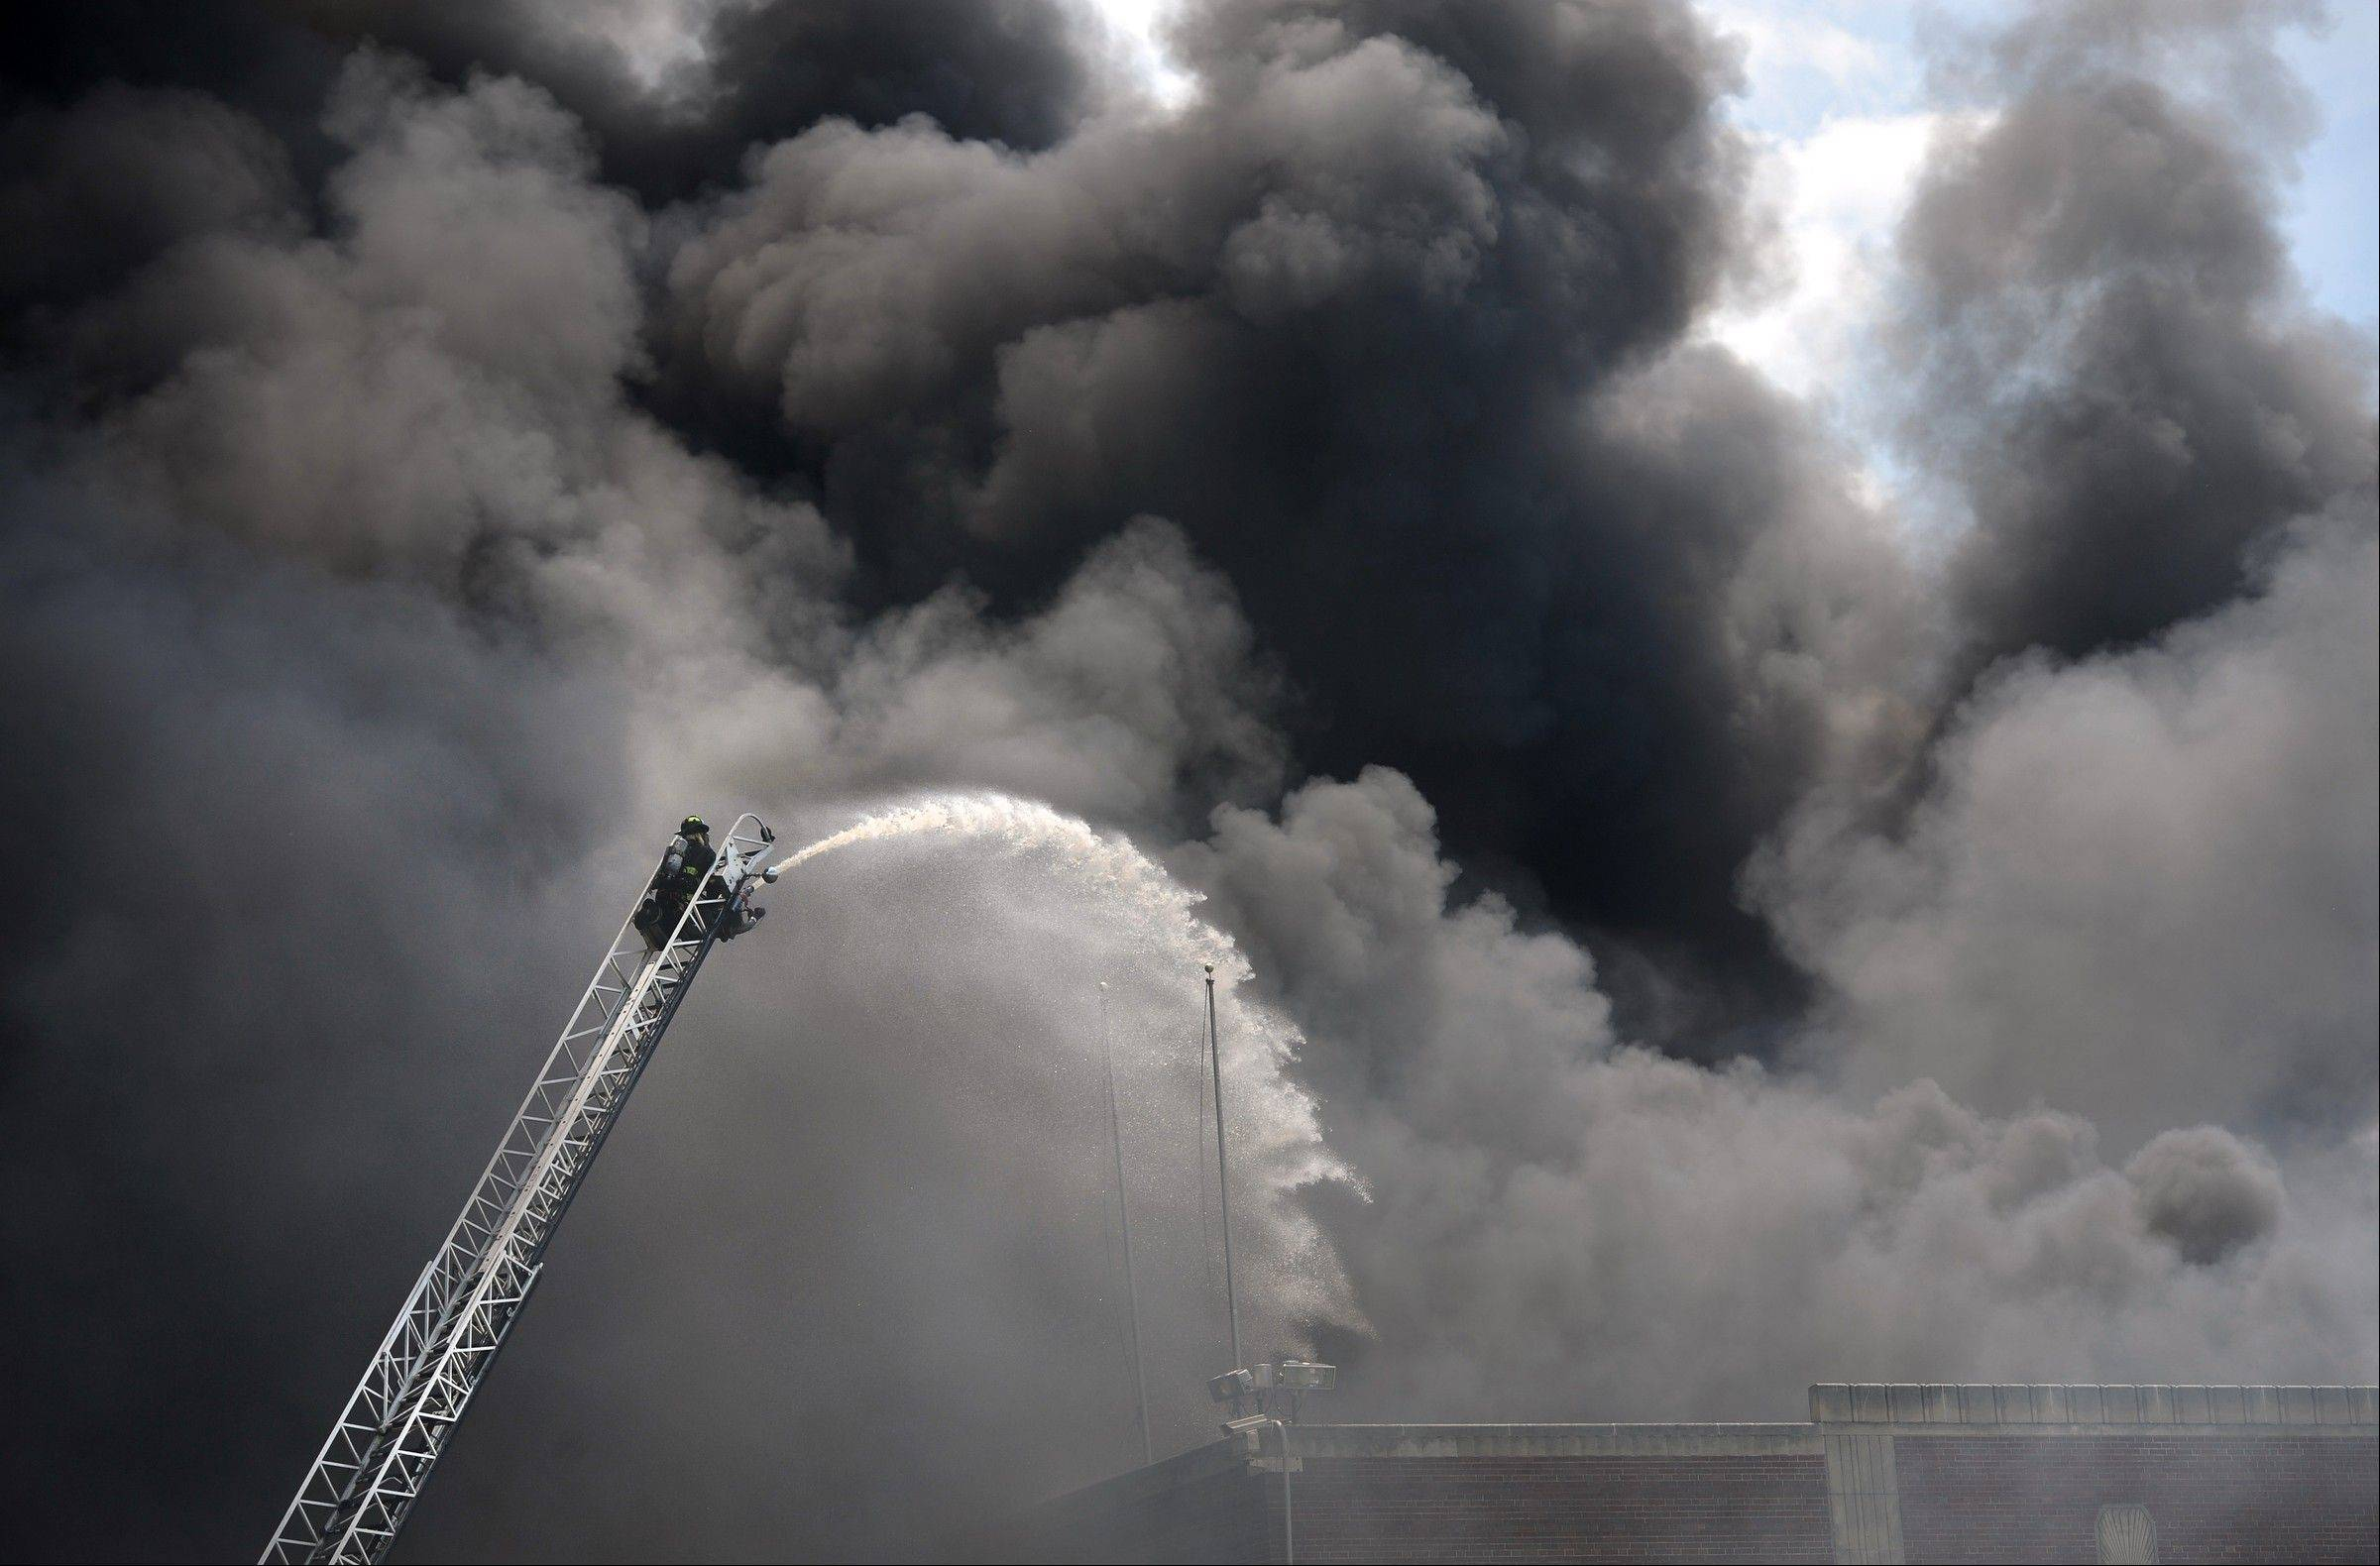 Firefighters spray water on a large fire Saturday in Indianapolis. An estimated 150 firefighters were battling the blaze Saturday afternoon in the building about one mile southwest of the city�s downtown.